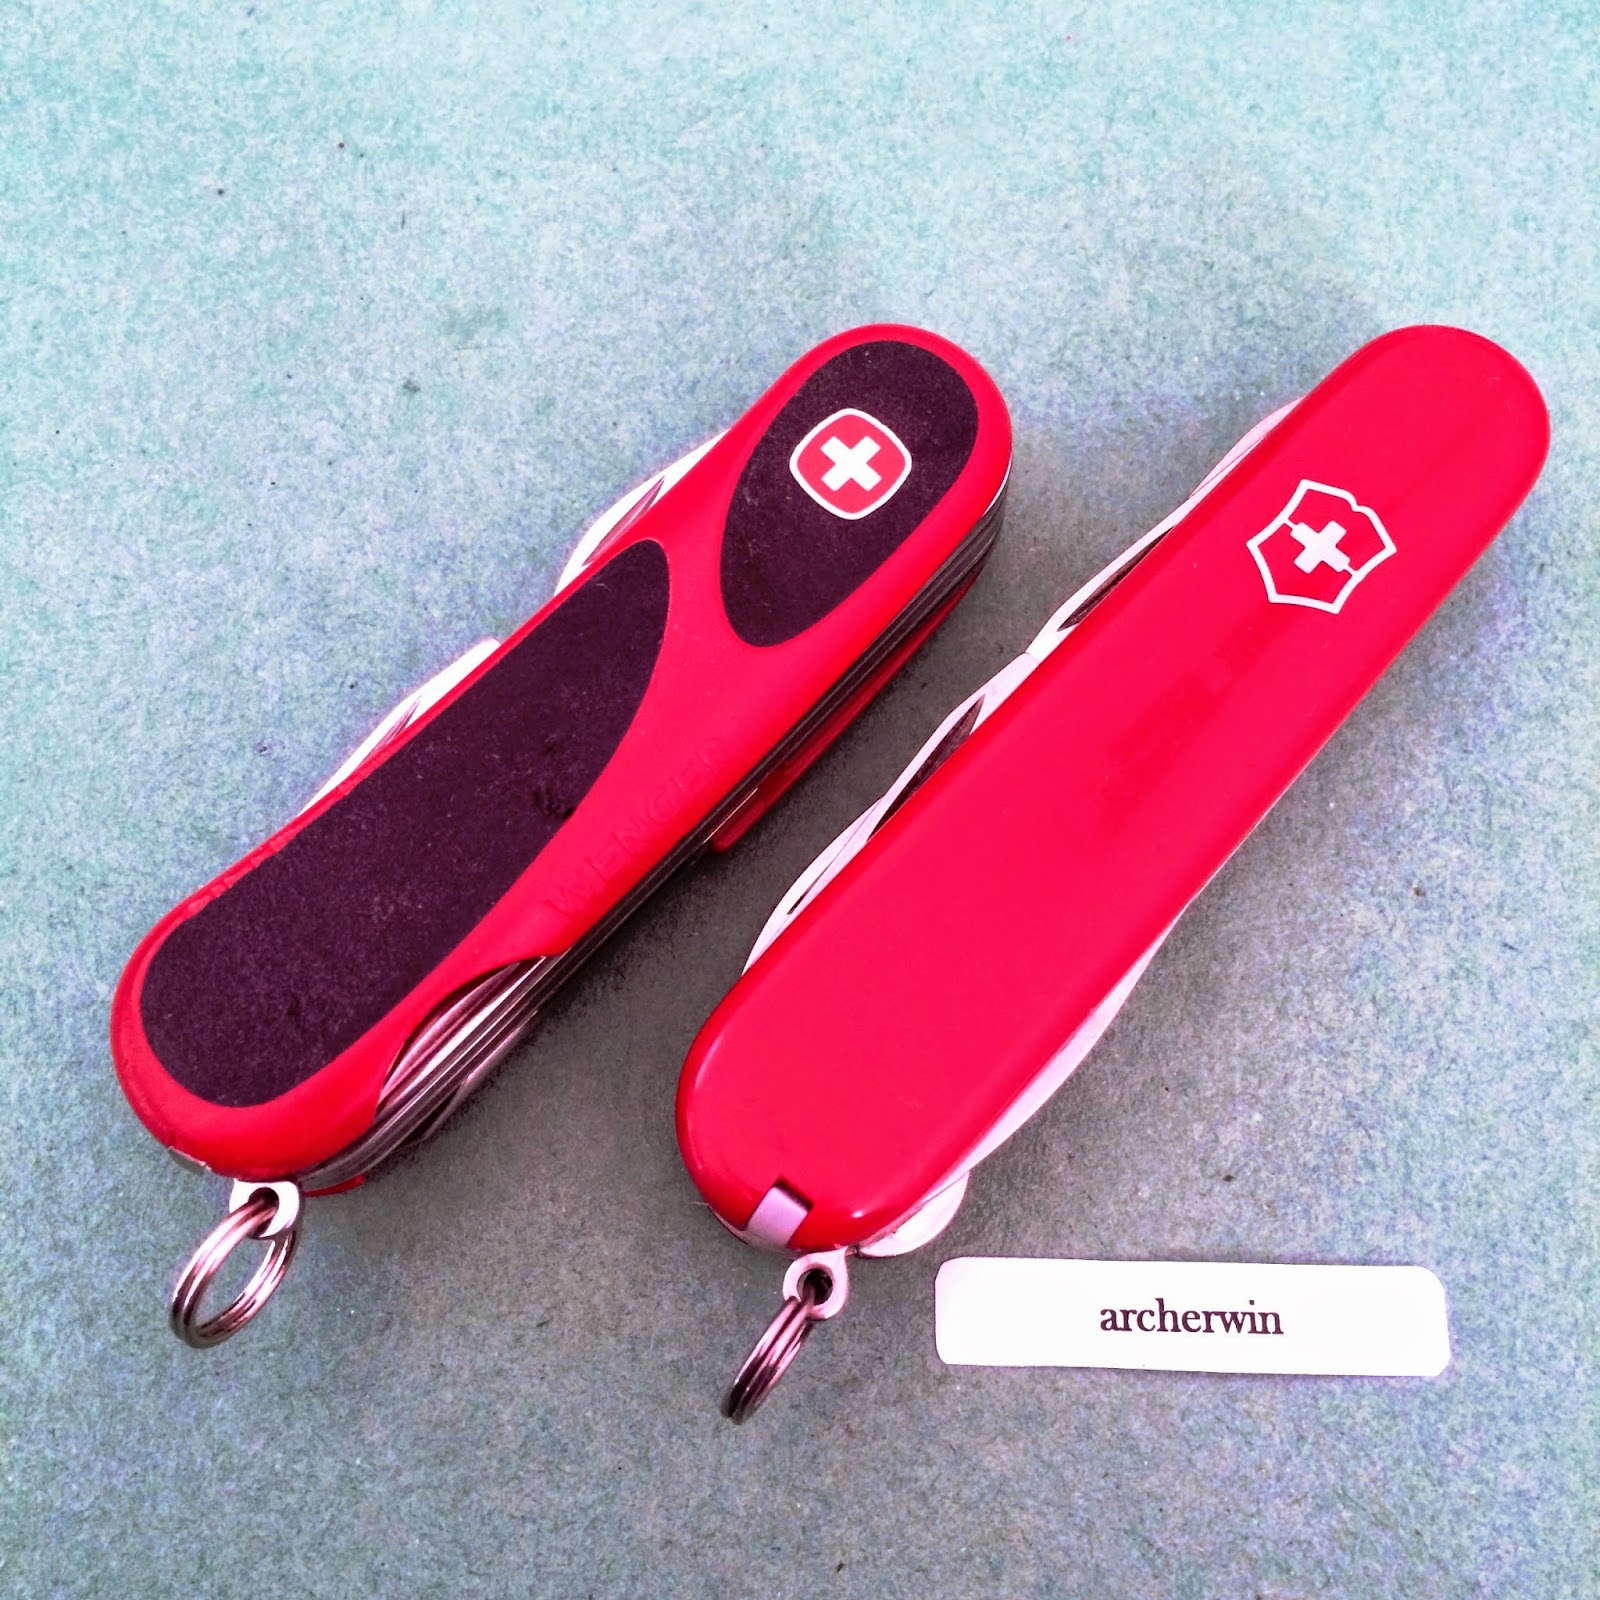 Archerwin S Swiss Army Knives Review Victorinox